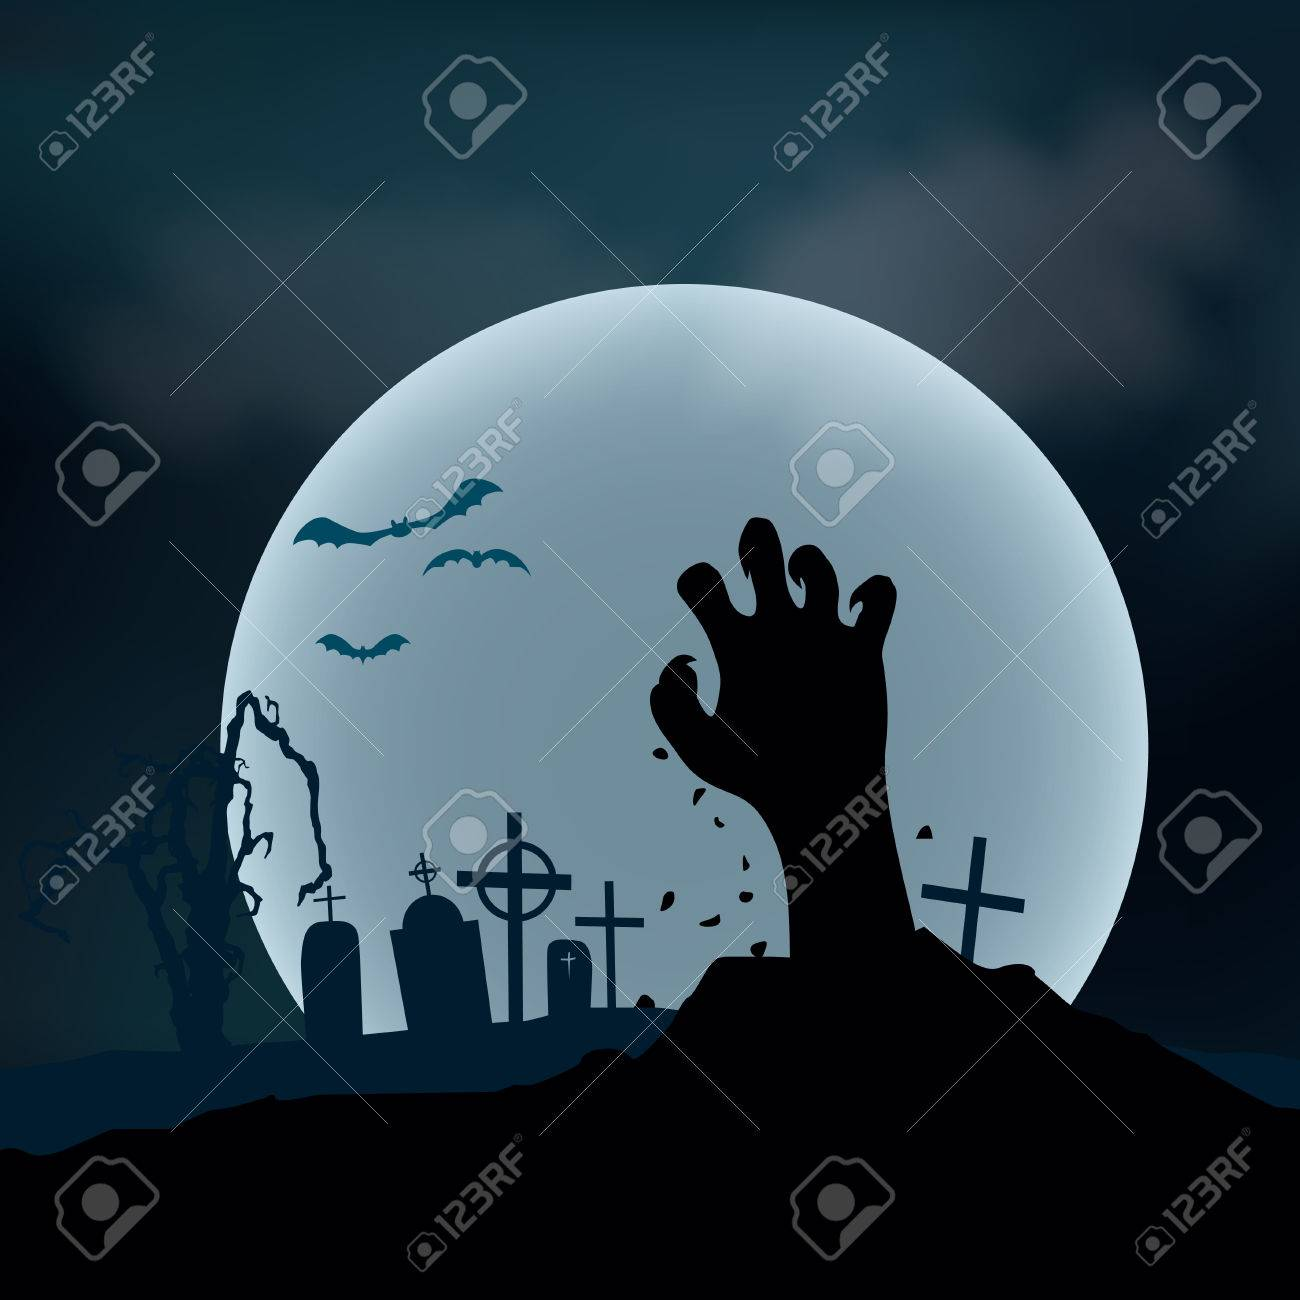 Halloween Background. Zombie hand rising out from the ground illustration - 62197421